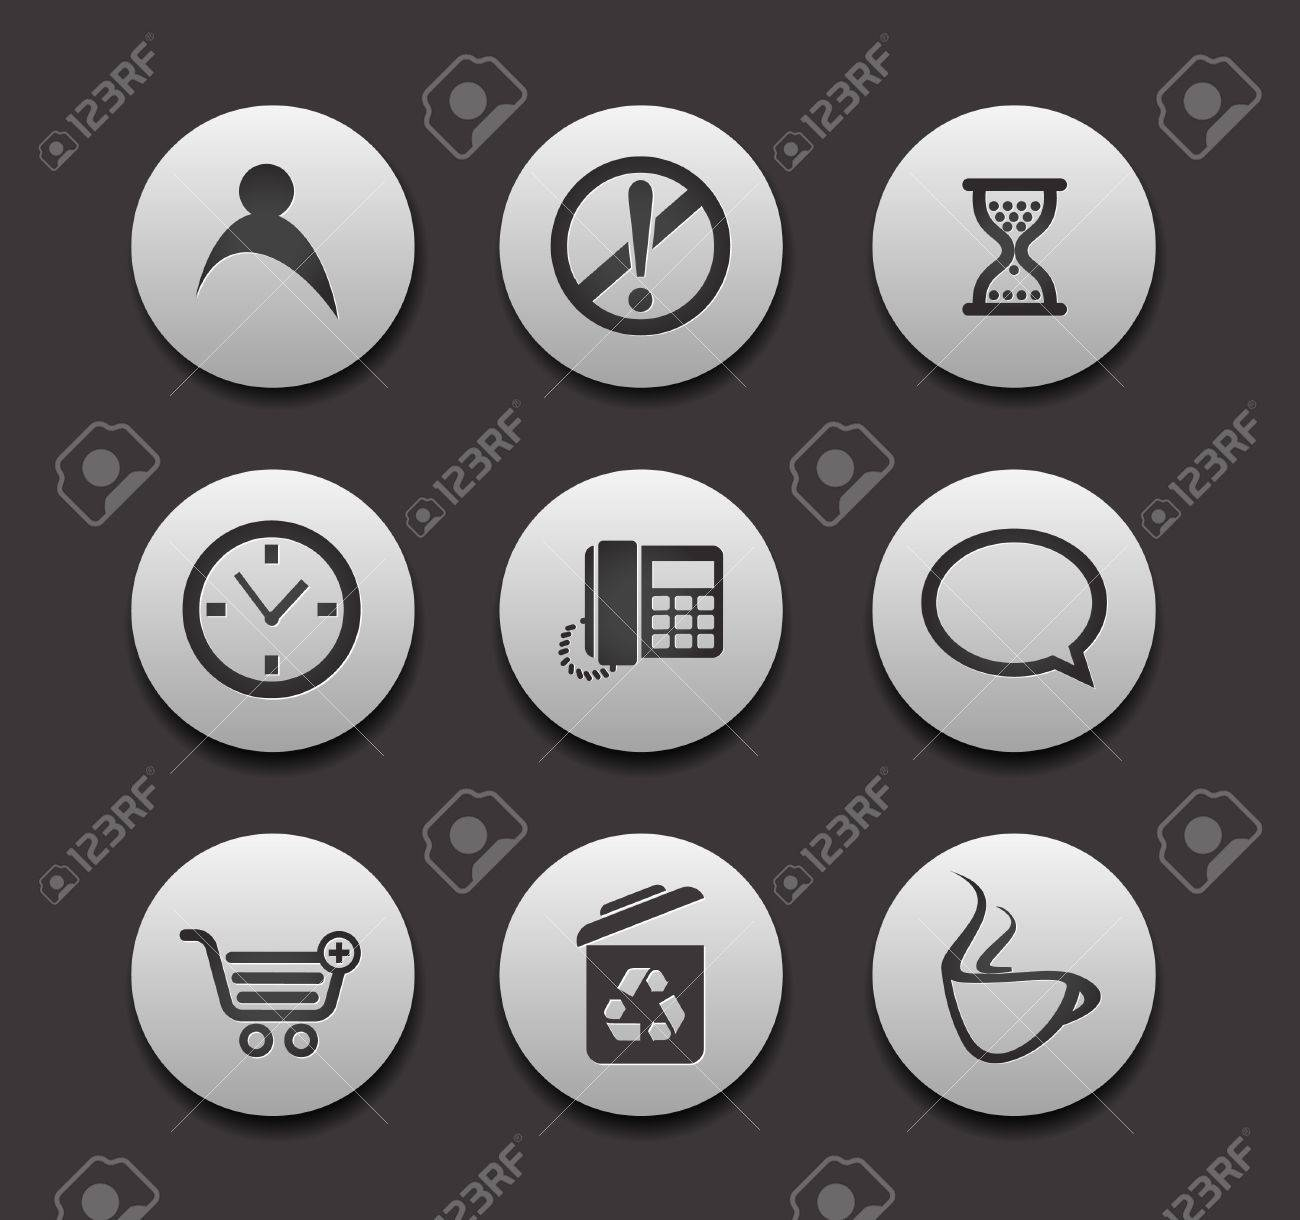 Set of different web Icons graphics for web design collections. Stock Vector - 9559300